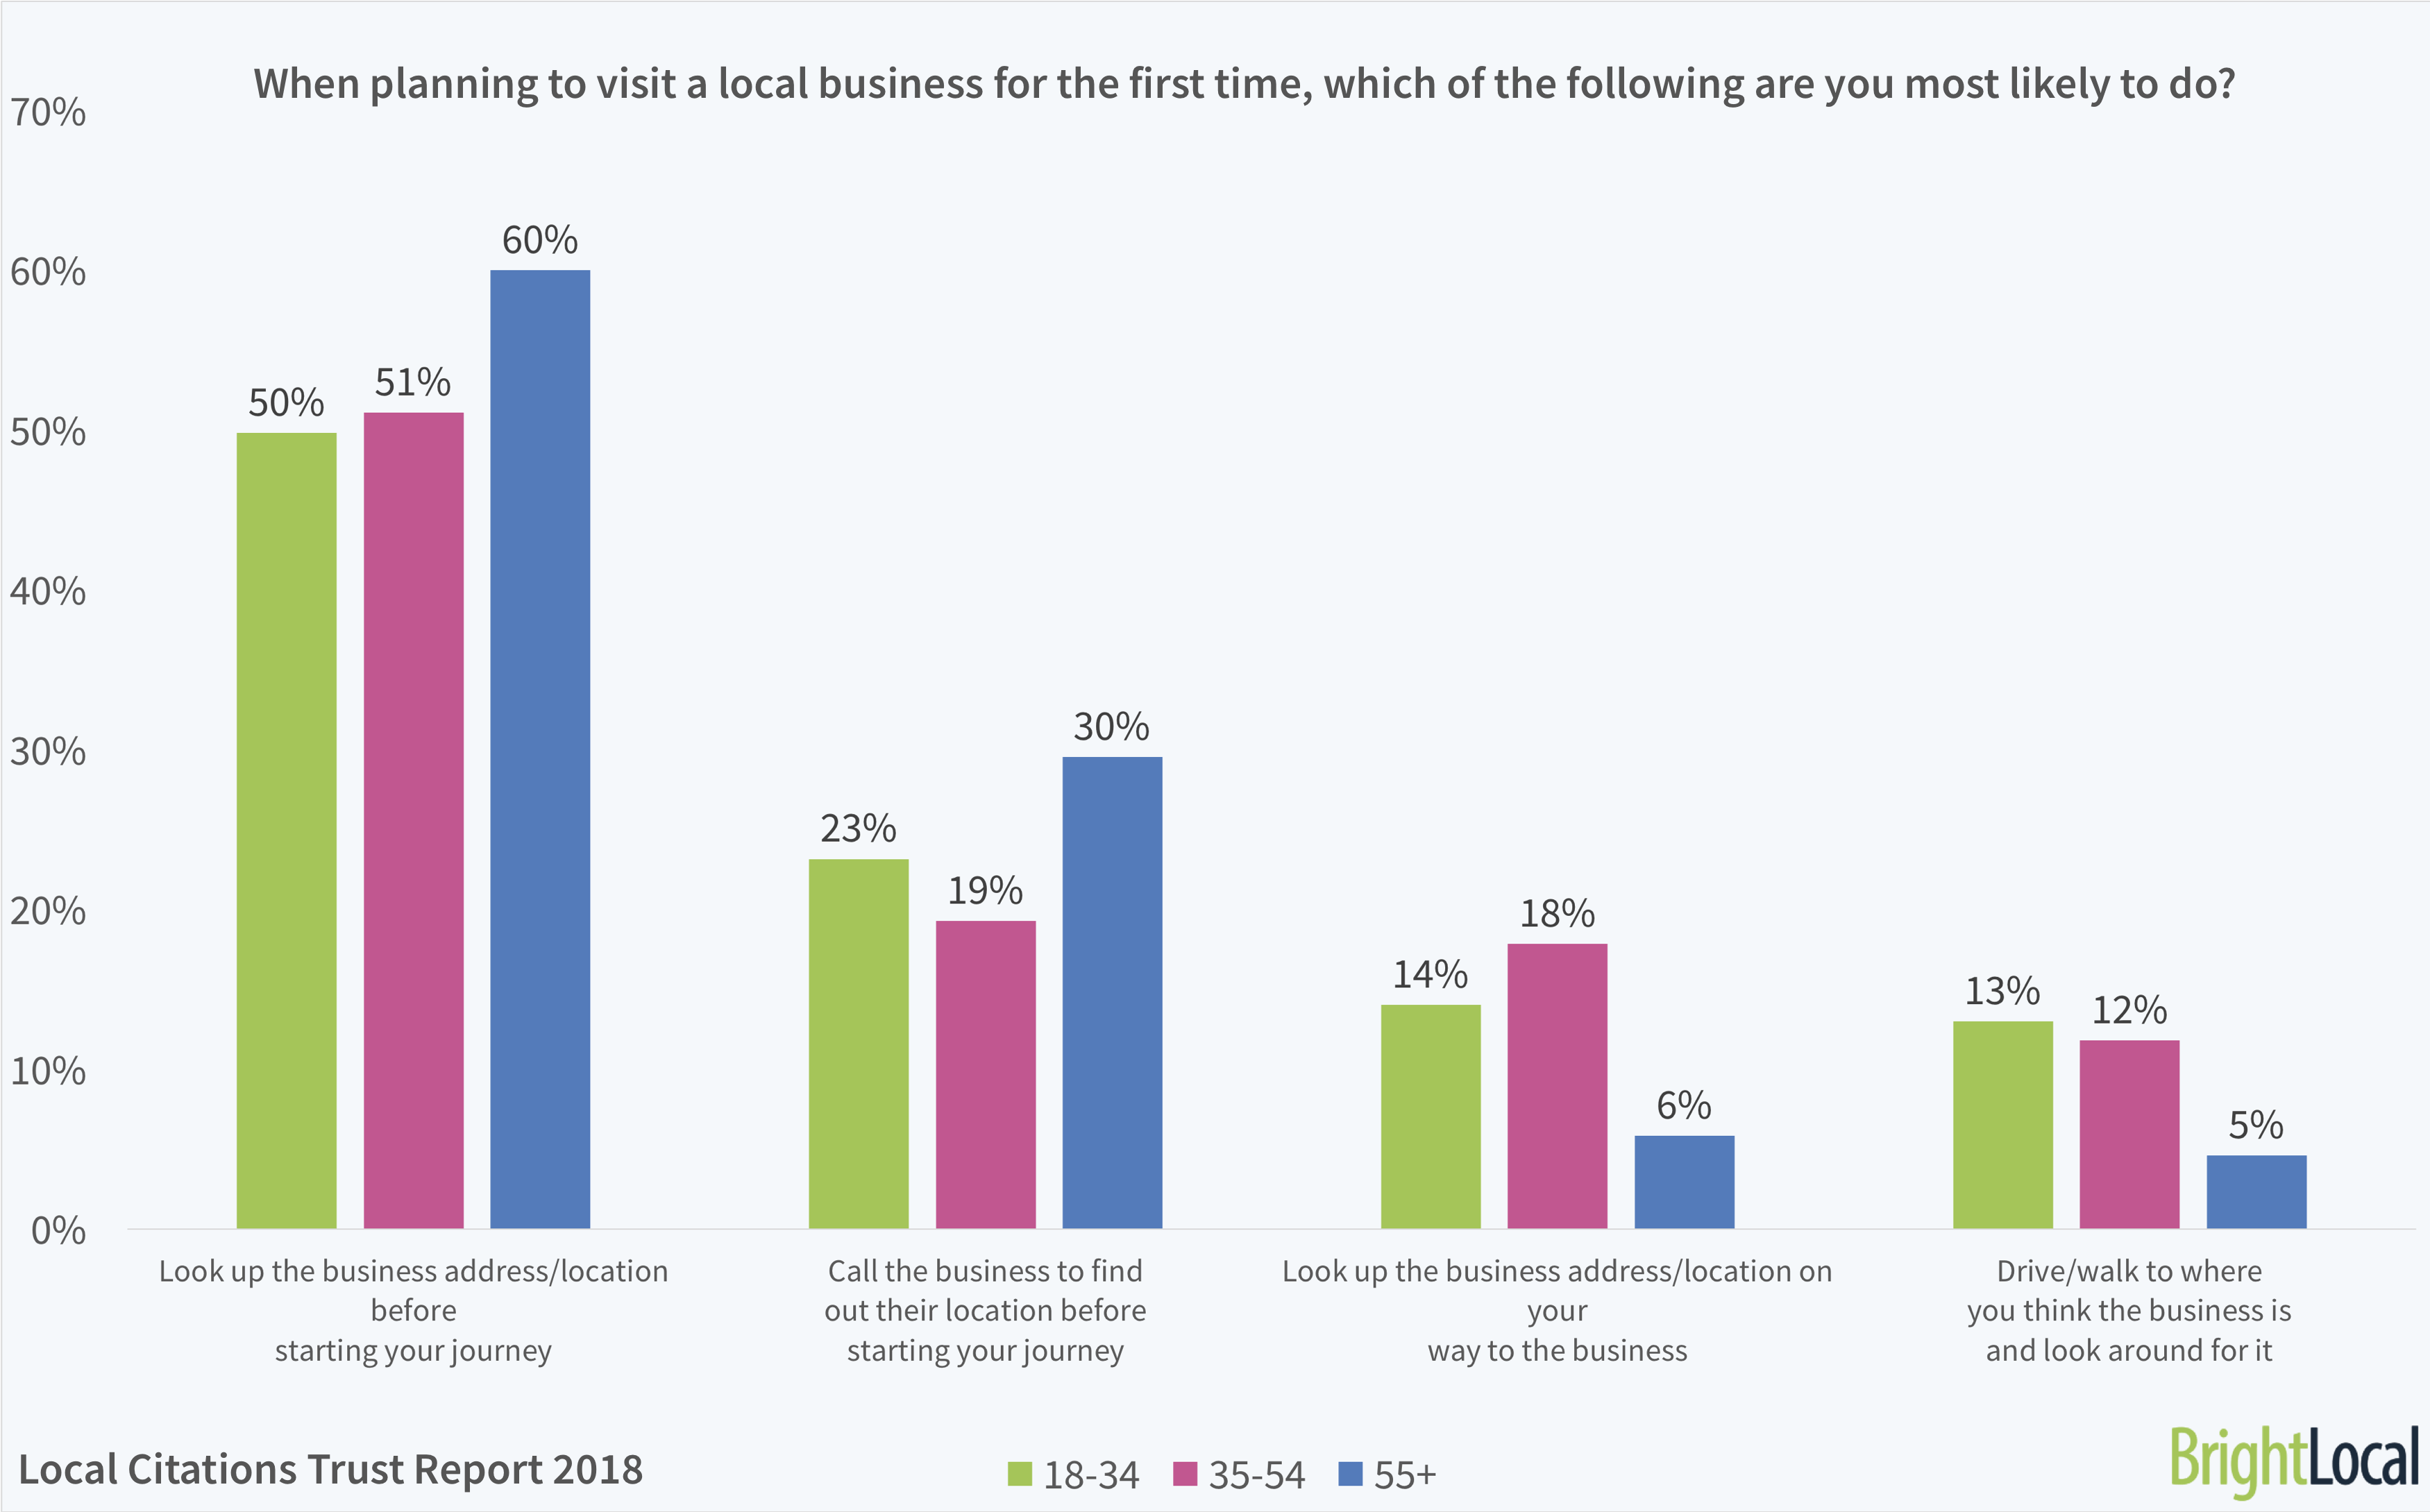 When planning to visit a local business for the first time, what are you most likely to do? | BrightLocal Local Citations Trust Report 2018